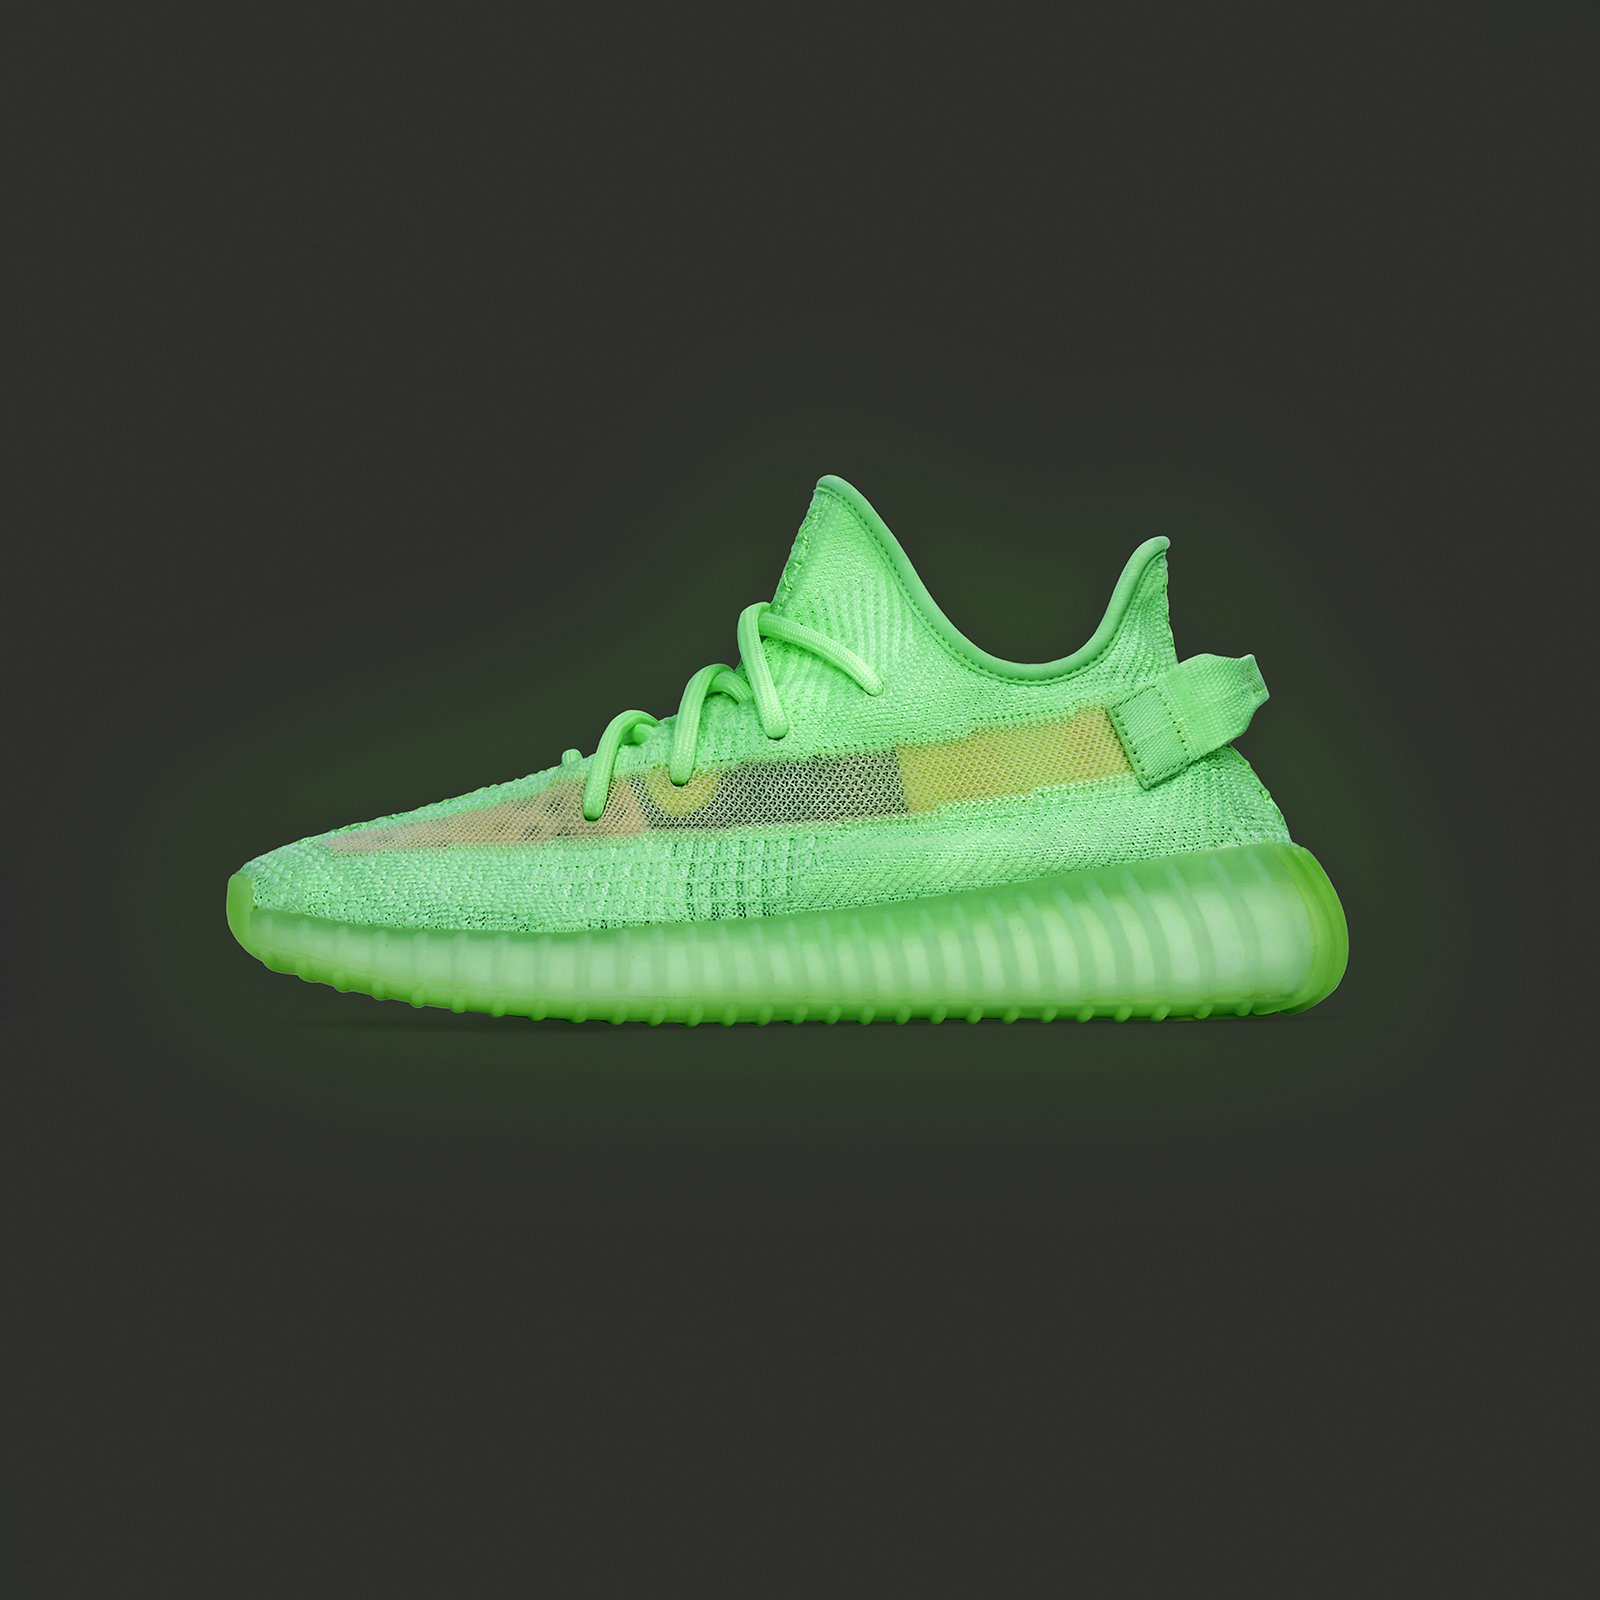 adidas yeezy boost 350 v2 gid glow adidas Originals x Kanye West Yeezy Boost 350 V2 GID - 5. Close